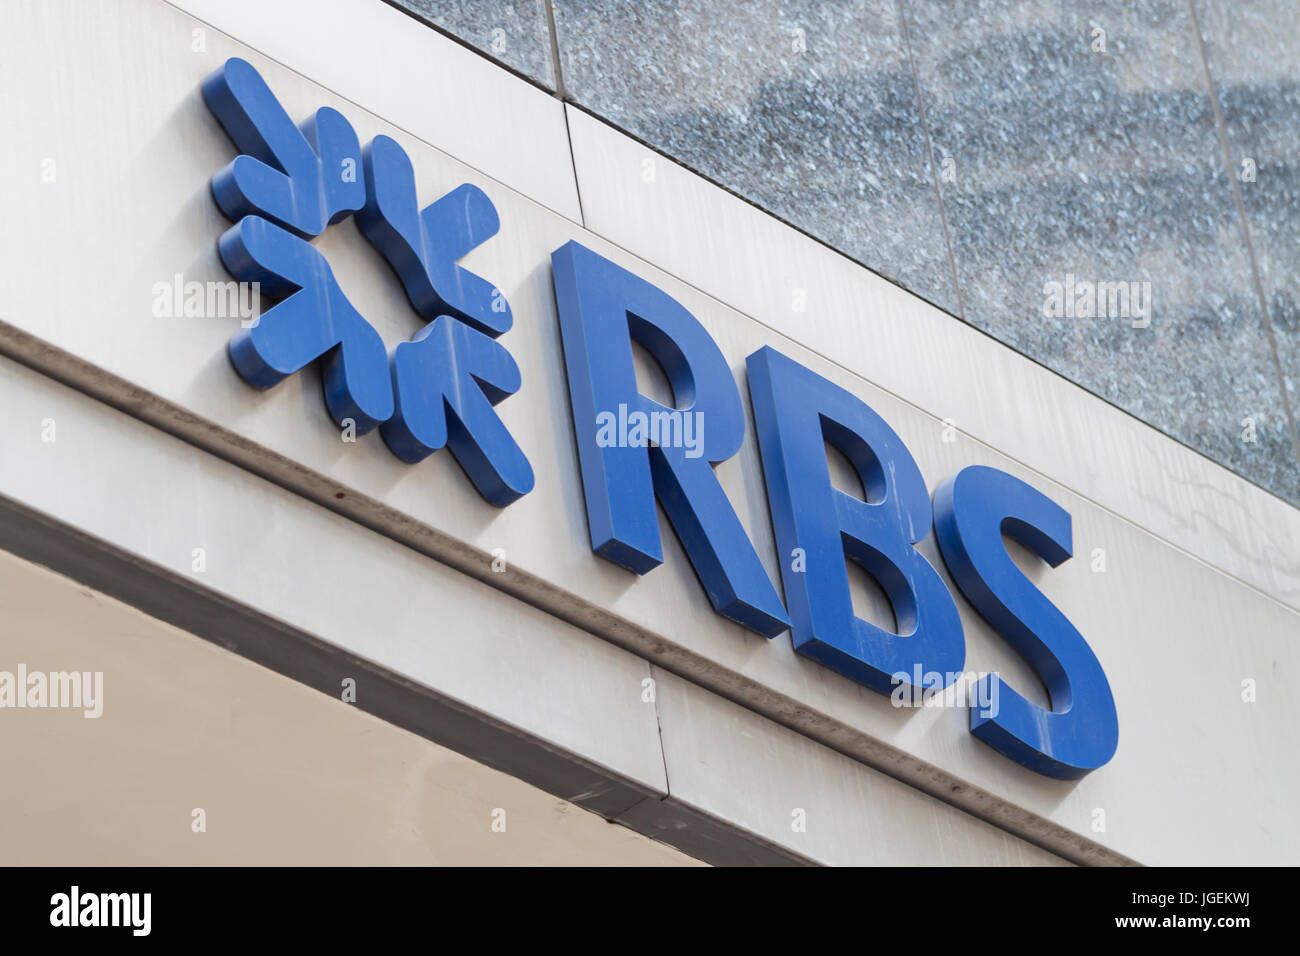 Close-up view of the Royal Bank of Scotland (RBS) brand name with logo in London Stock Photo